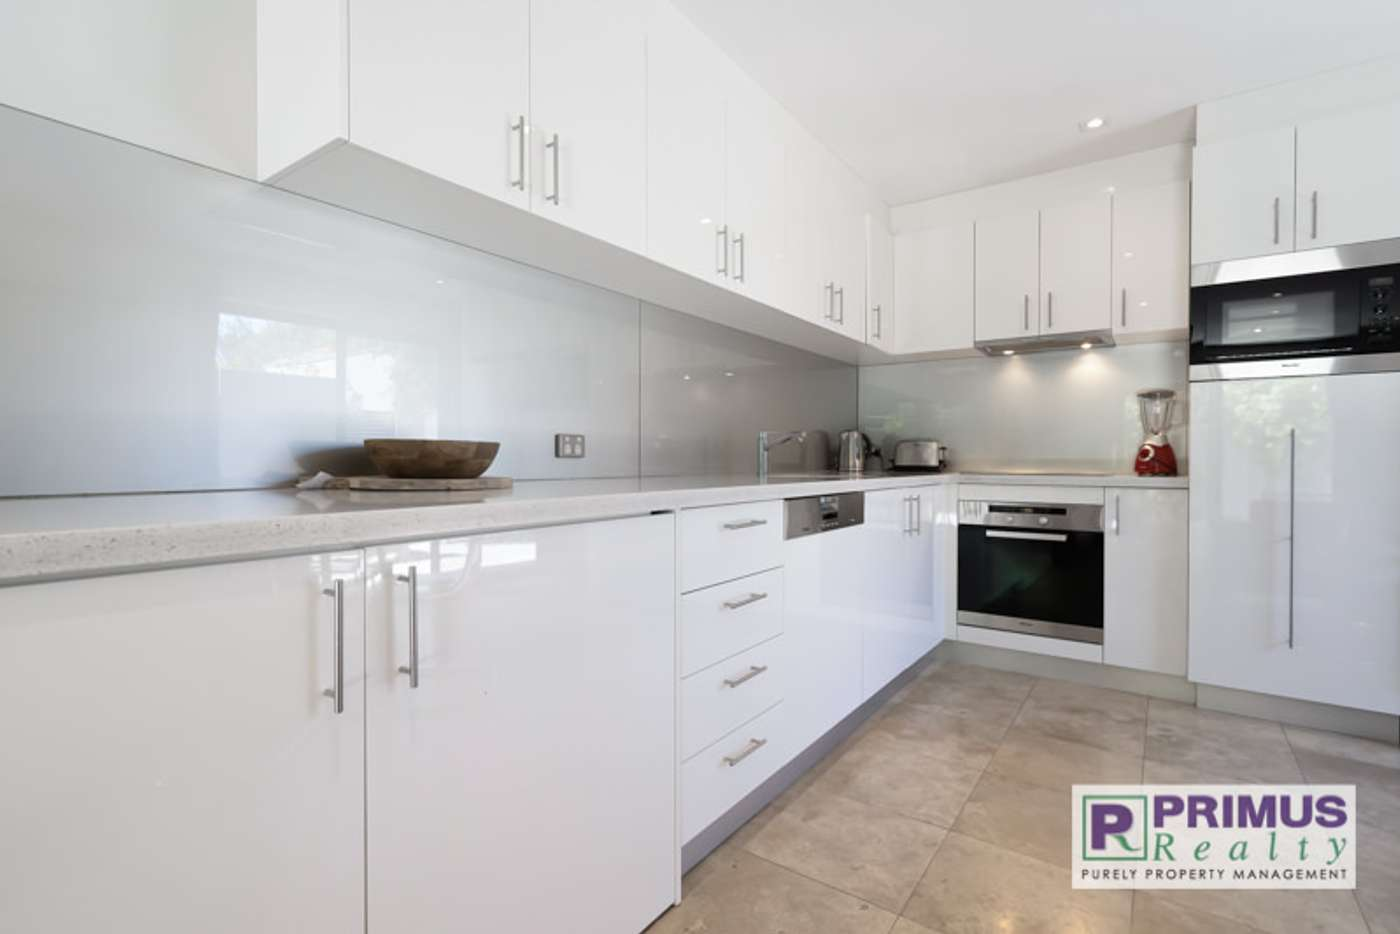 Main view of Homely apartment listing, 4/6 Brookside Avenue, South Perth WA 6151